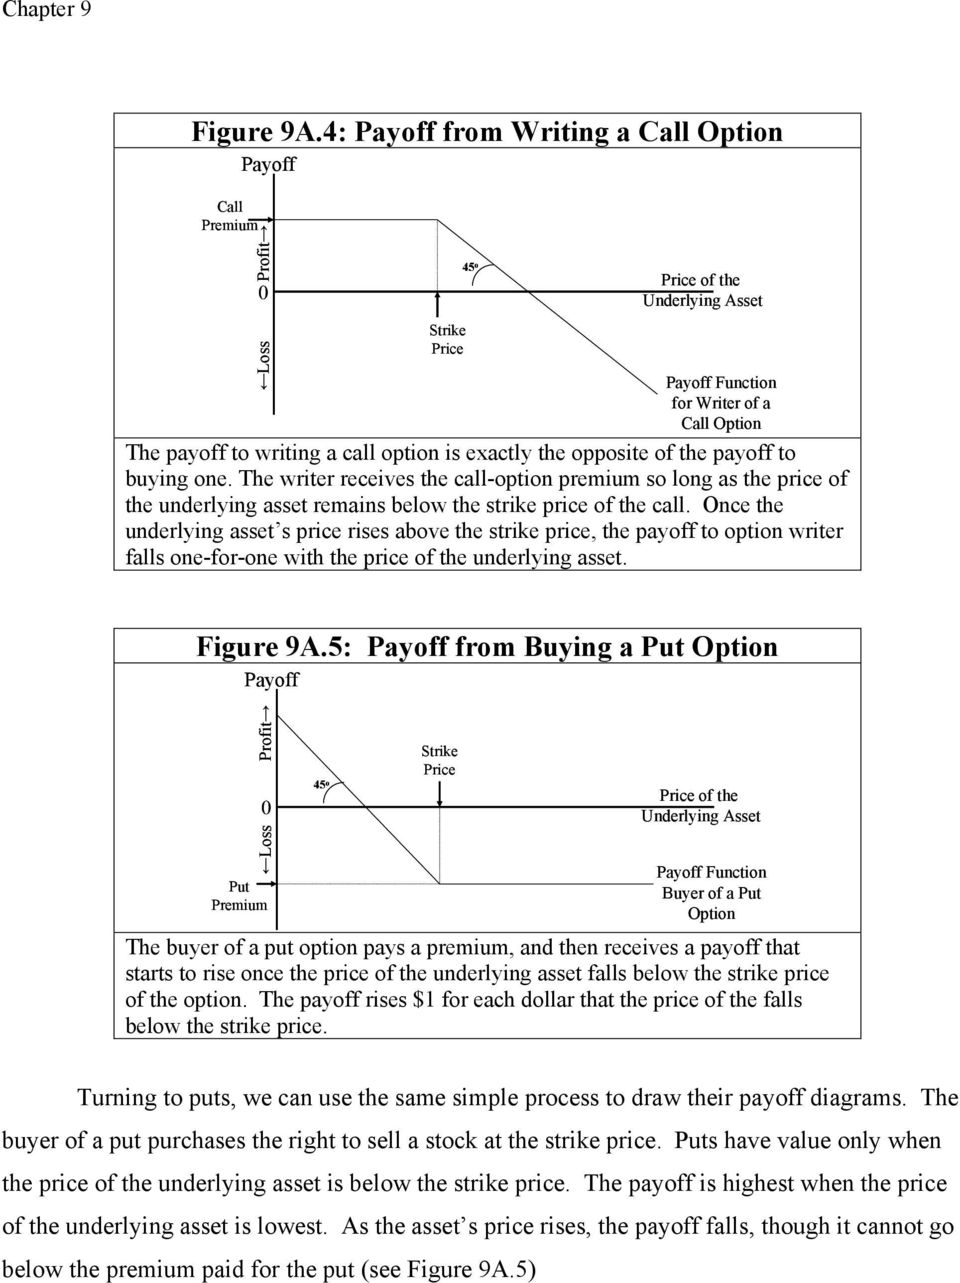 Once the underlying asset s price rises above the strike price, the payoff to option writer falls one-for-one with the price of the underlying asset. Figure 9A.